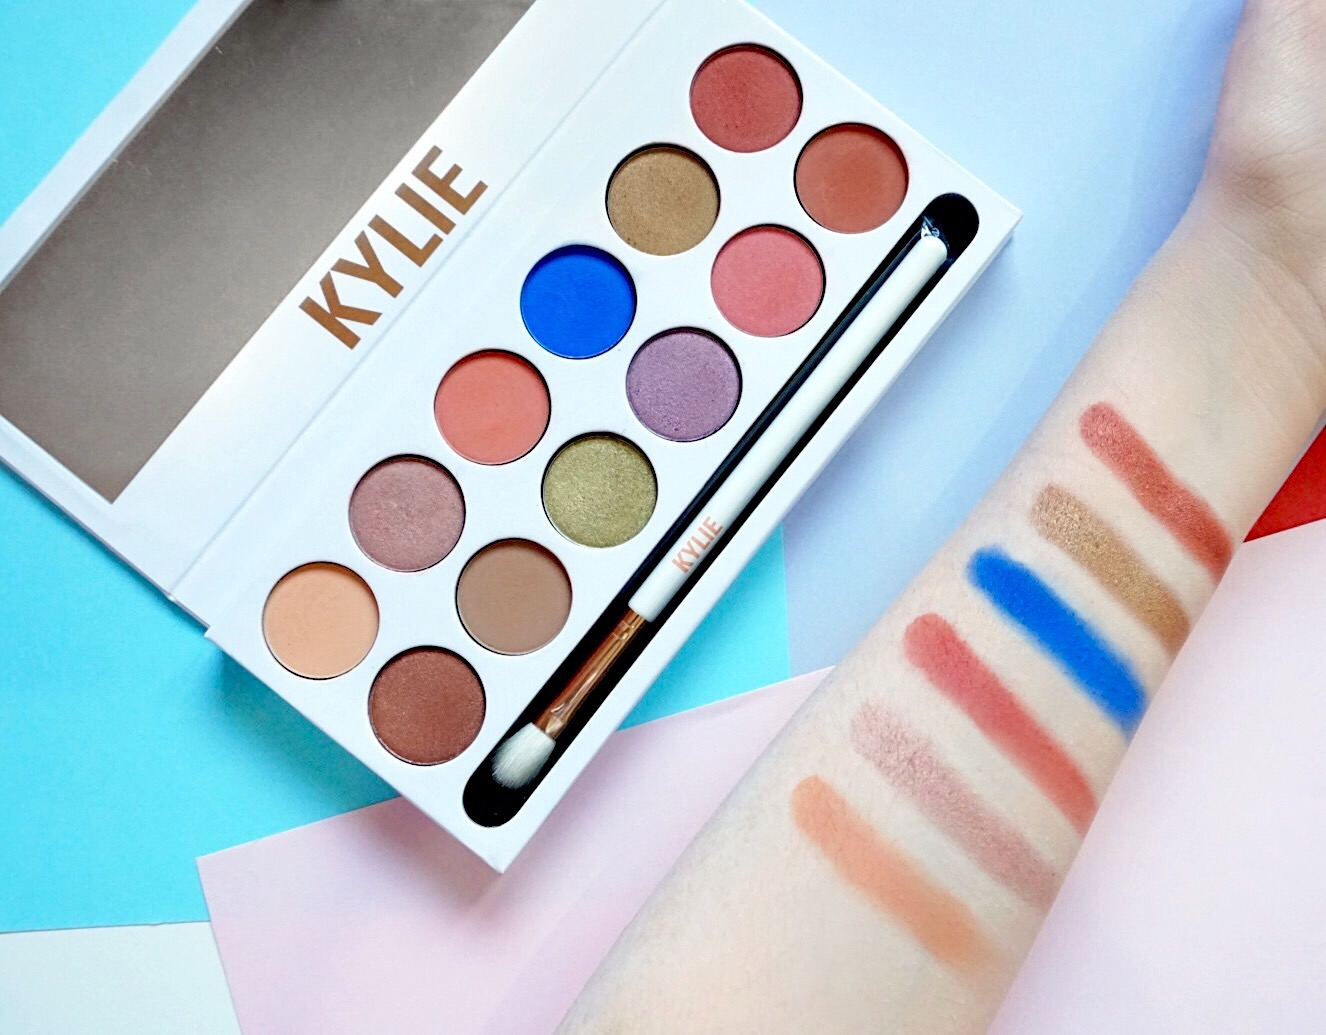 Kylie Cosmetics Royal Peach Palette Swatches